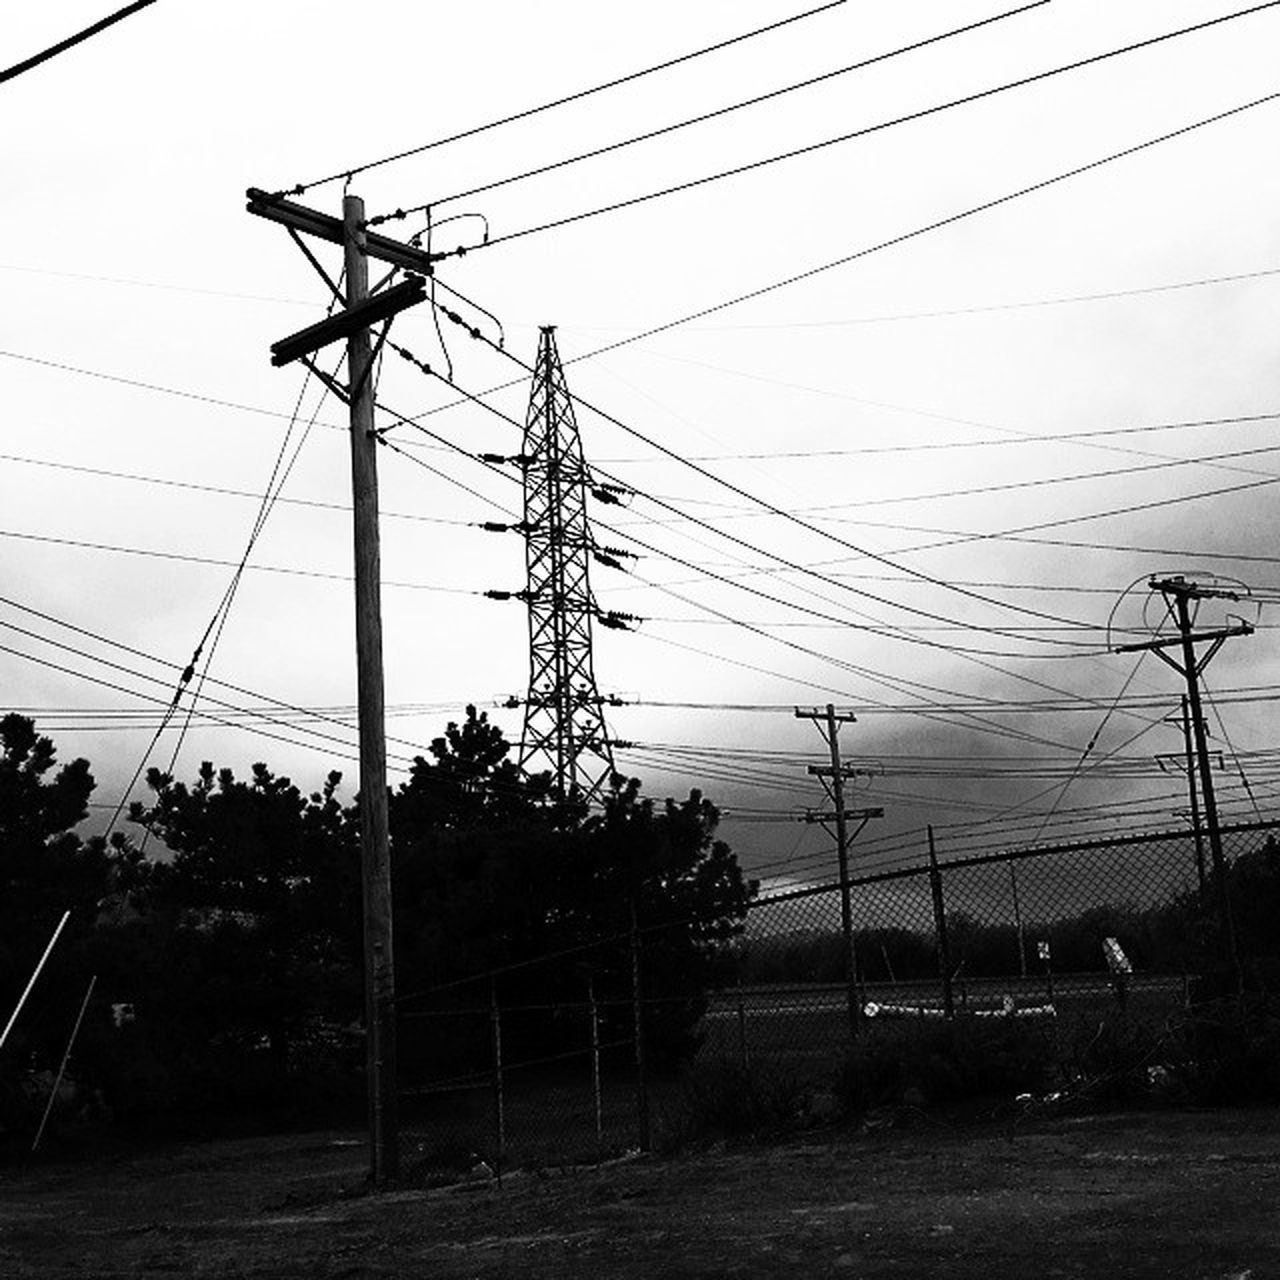 cable, power line, electricity, power supply, electricity pylon, connection, fuel and power generation, technology, sky, low angle view, no people, outdoors, day, complexity, tree, telephone line, nature